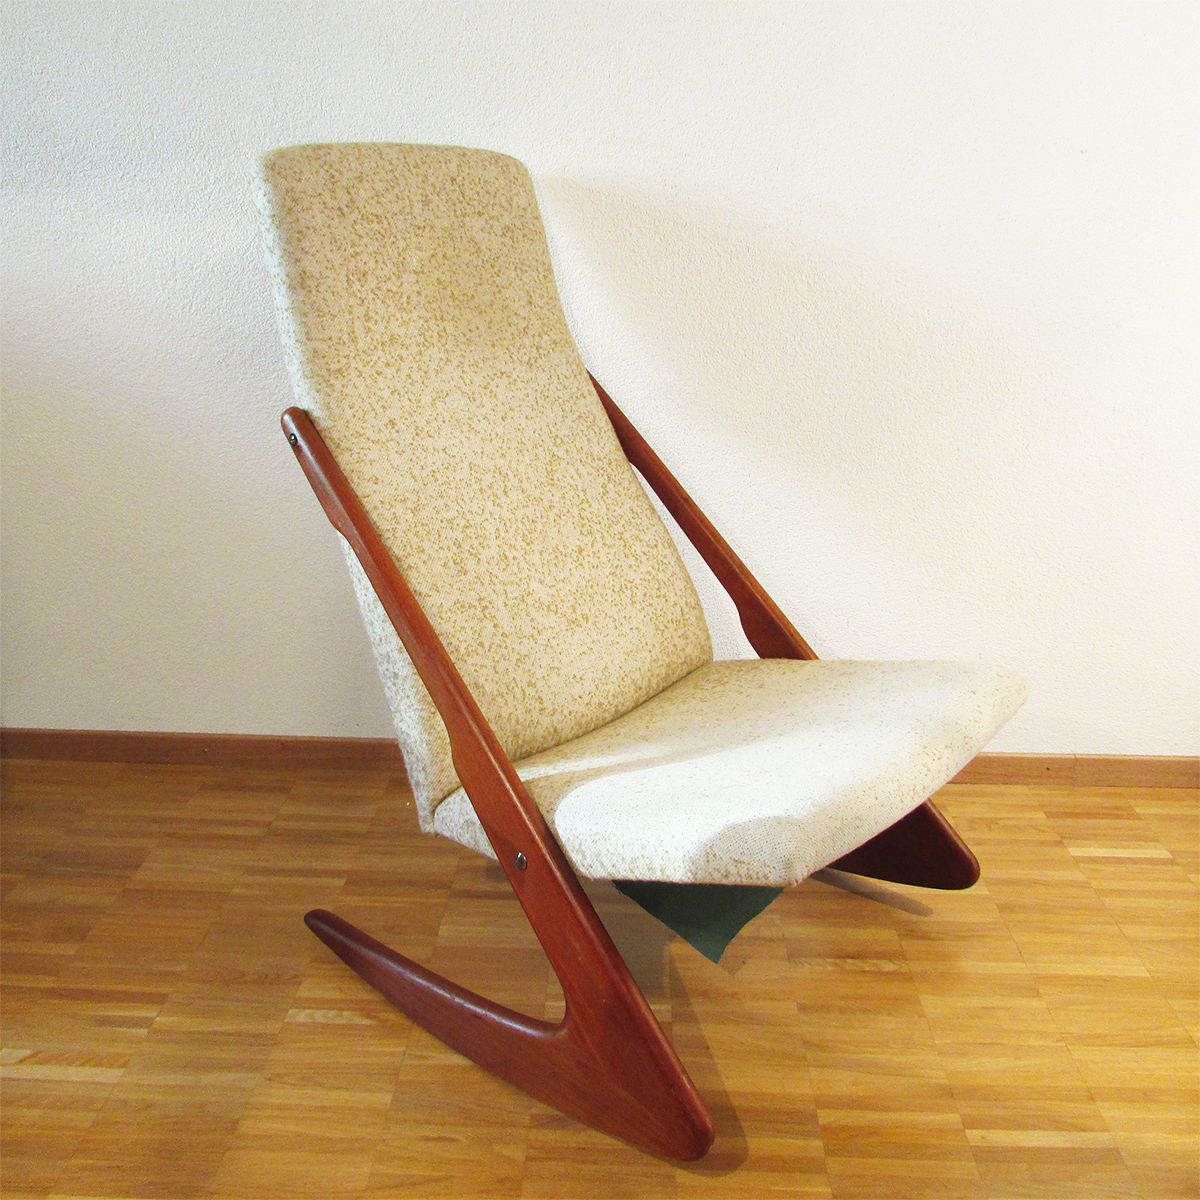 Rocking Chair Mogens Kold Artichoke Vintage Furniture